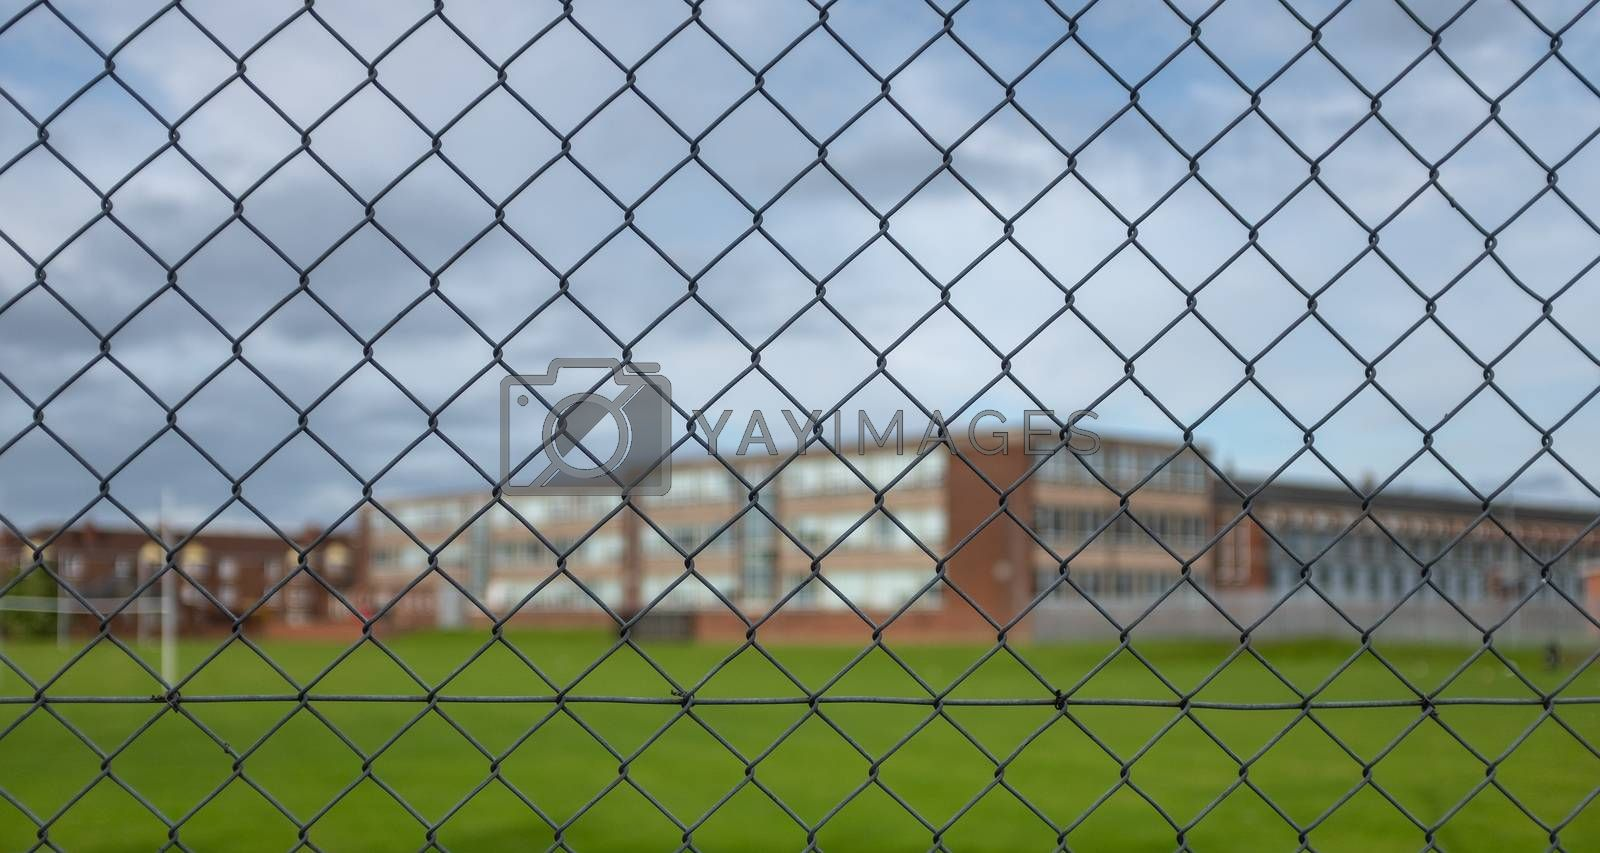 A Typical High School Building And Sports Field Under A Cloudy Sky With Focus On The Security Fence In The Foreground